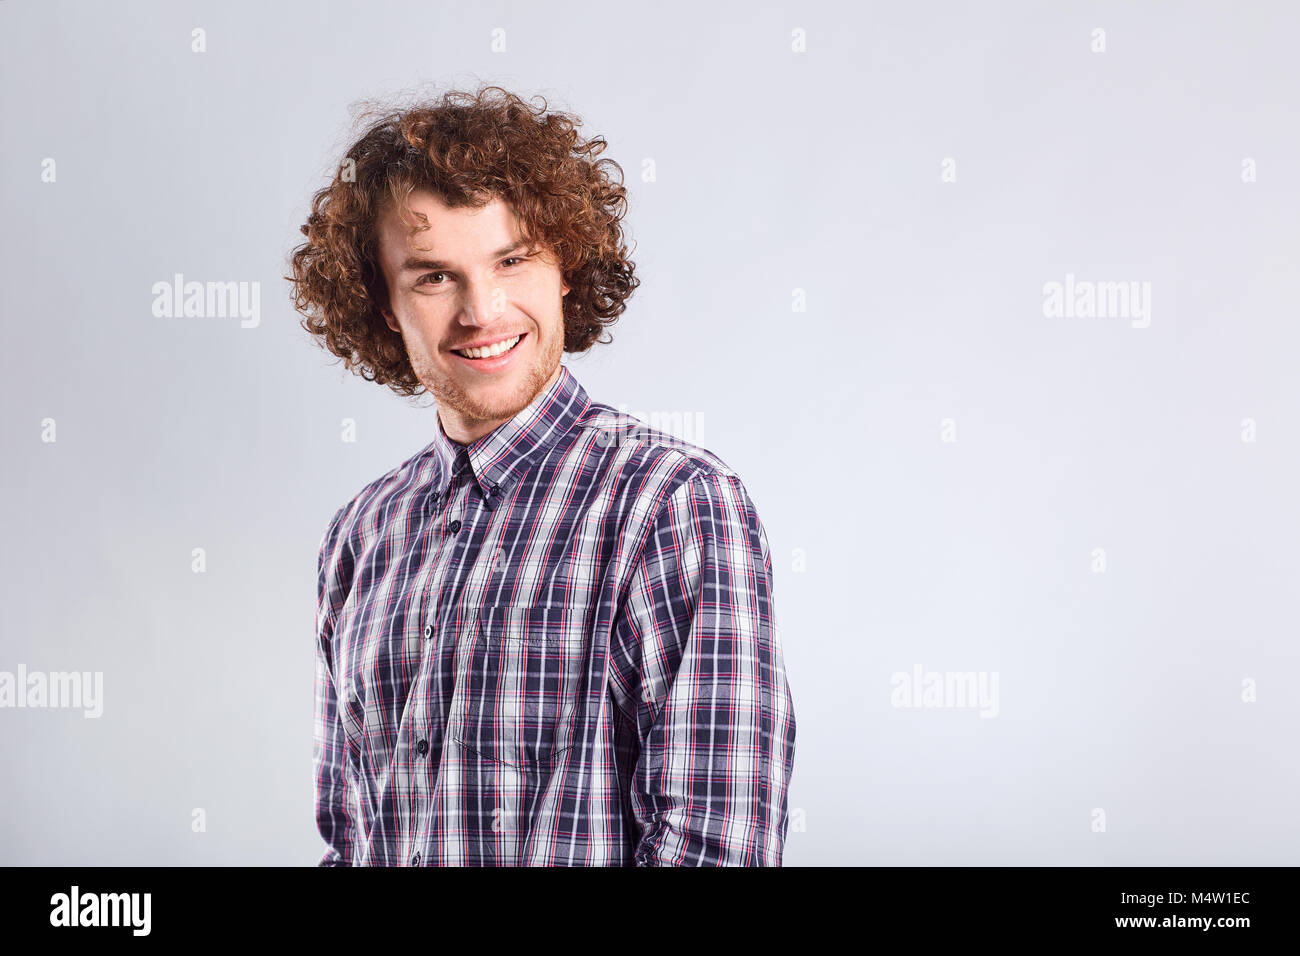 Curly guy smiles with a positive emotion. - Stock Image